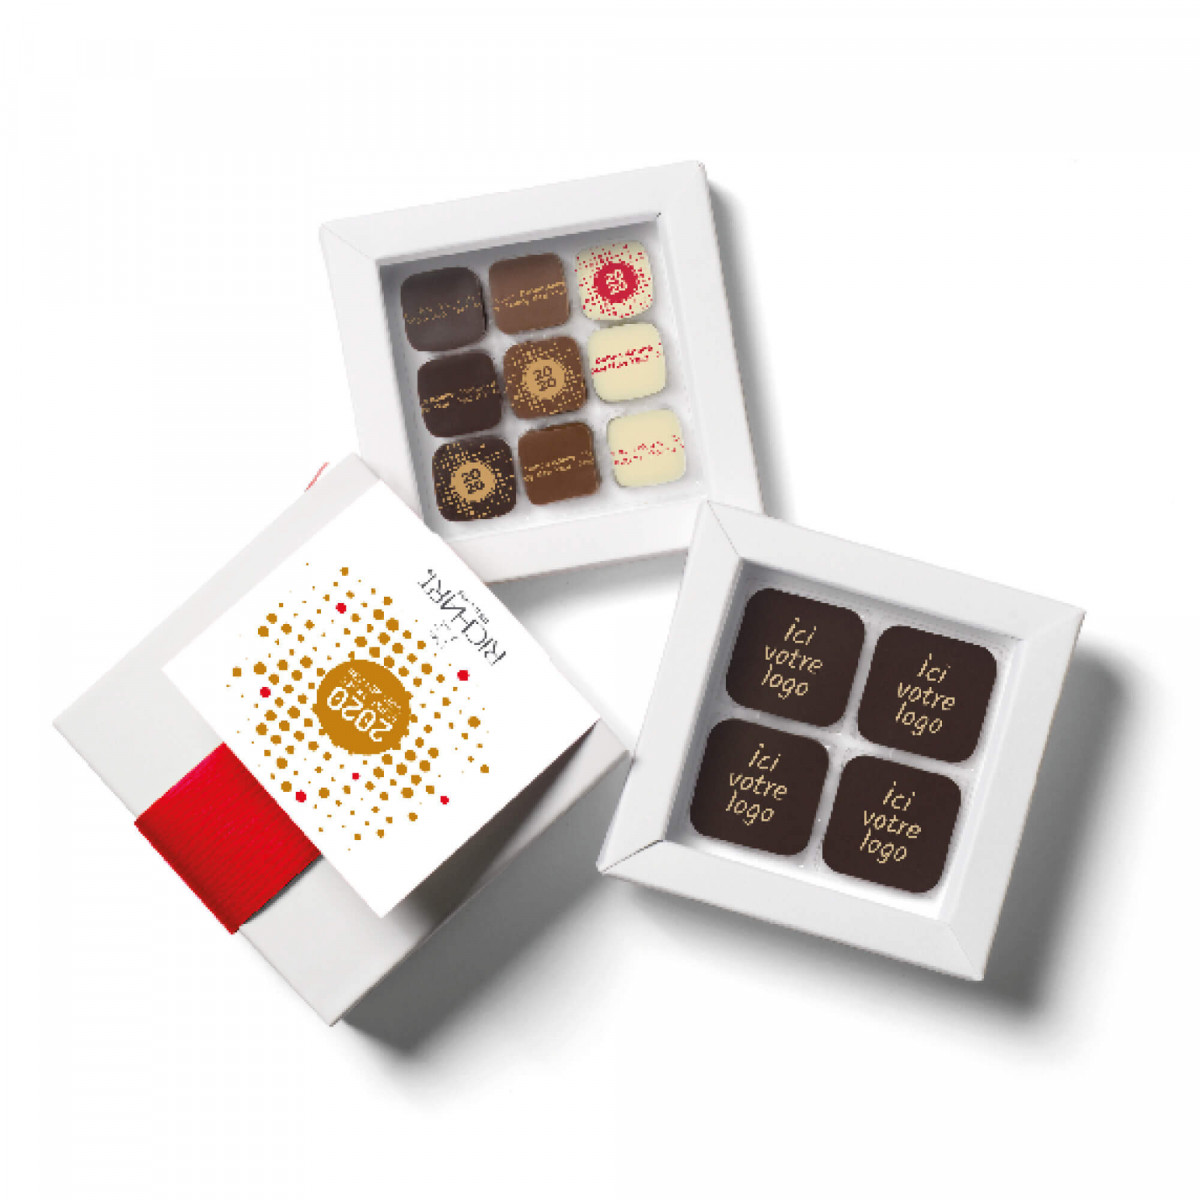 Cassiopeia Gift box - various personalization options